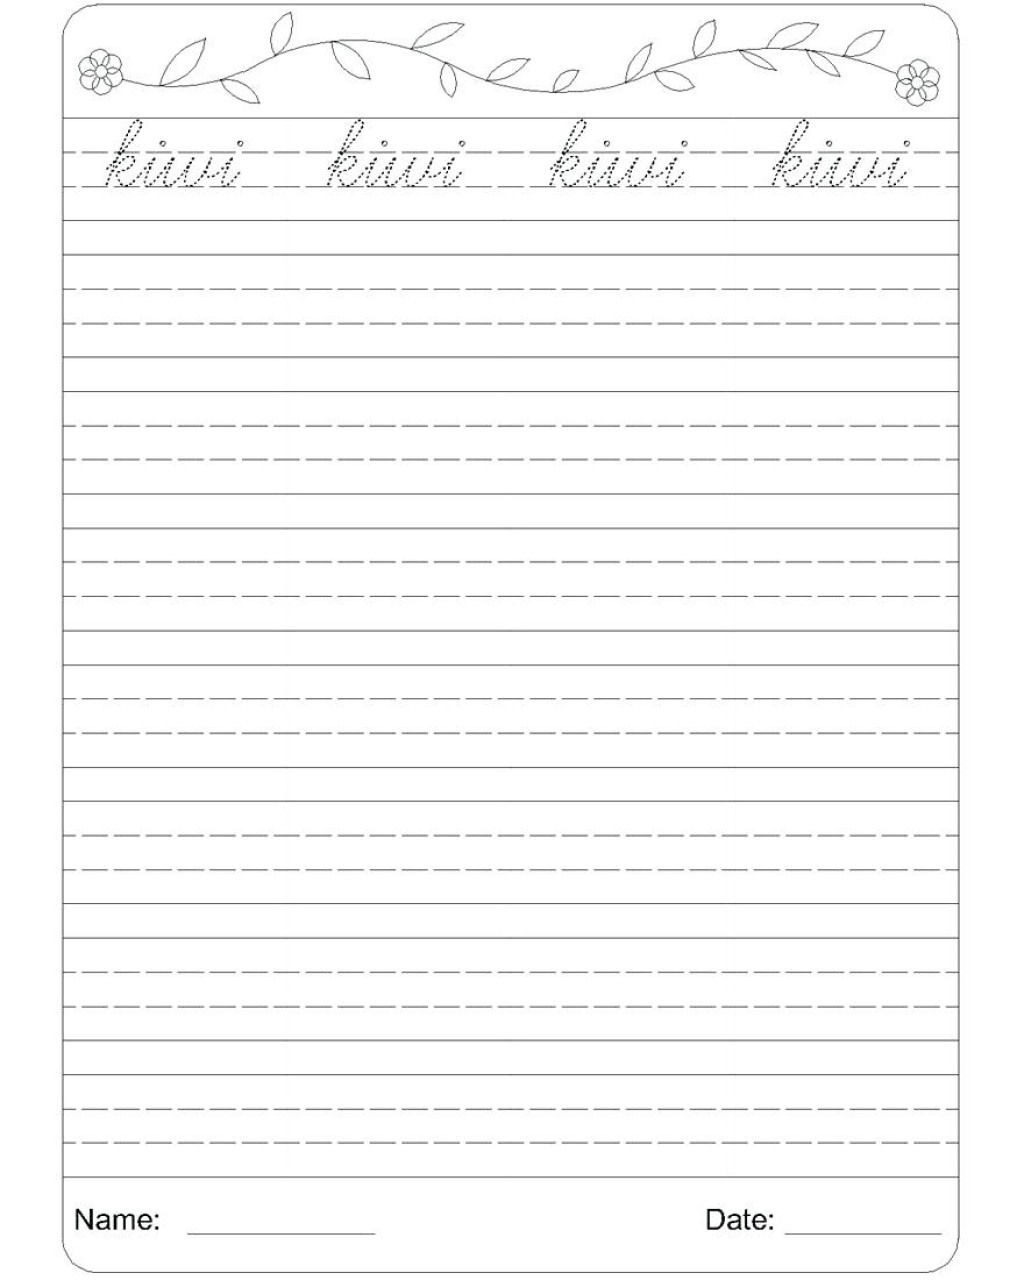 Fearsome Cursive Writing Words Worksheets Printable Word